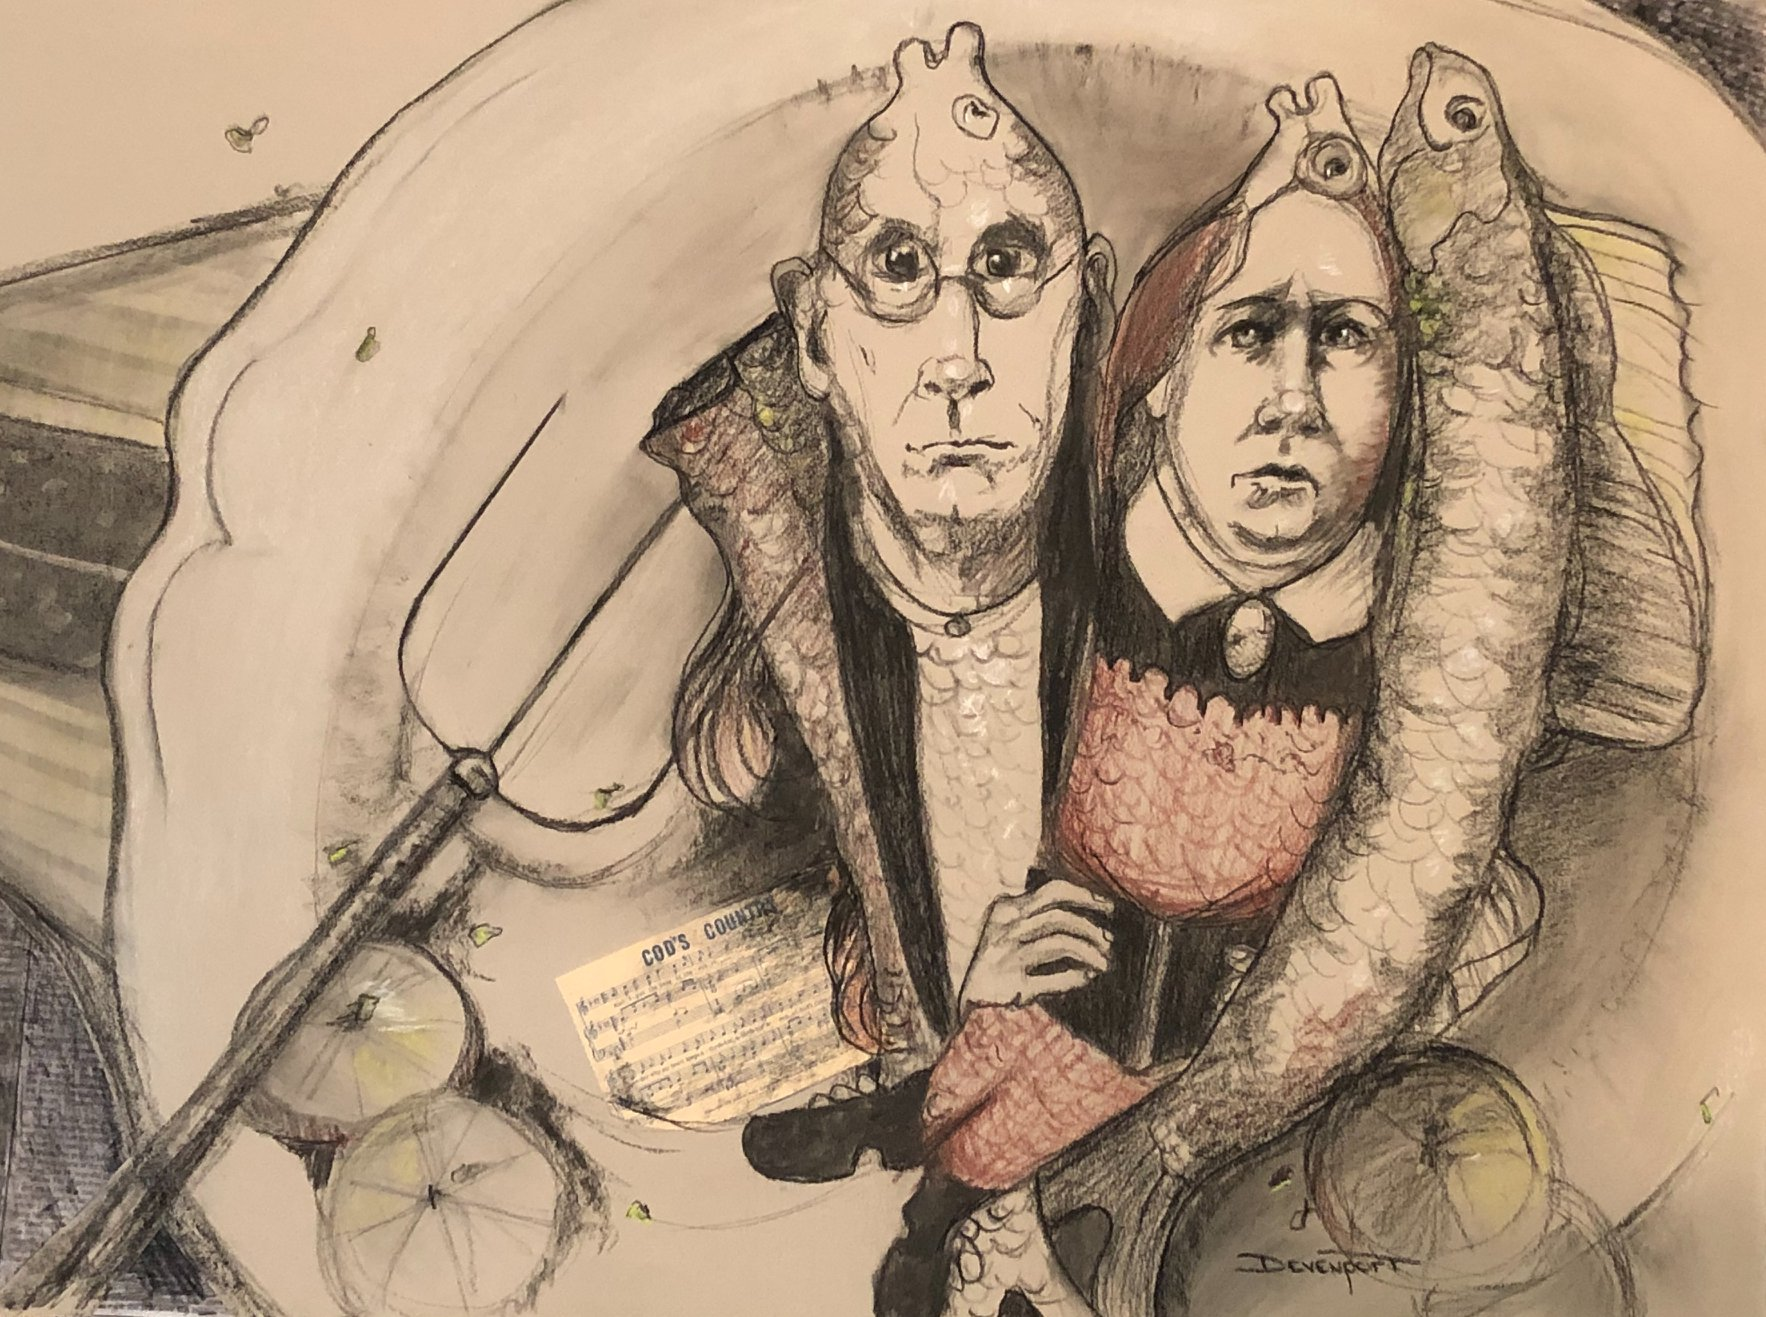 American Codfish is one of my drawings on exhibit (Ref Grant Wood)